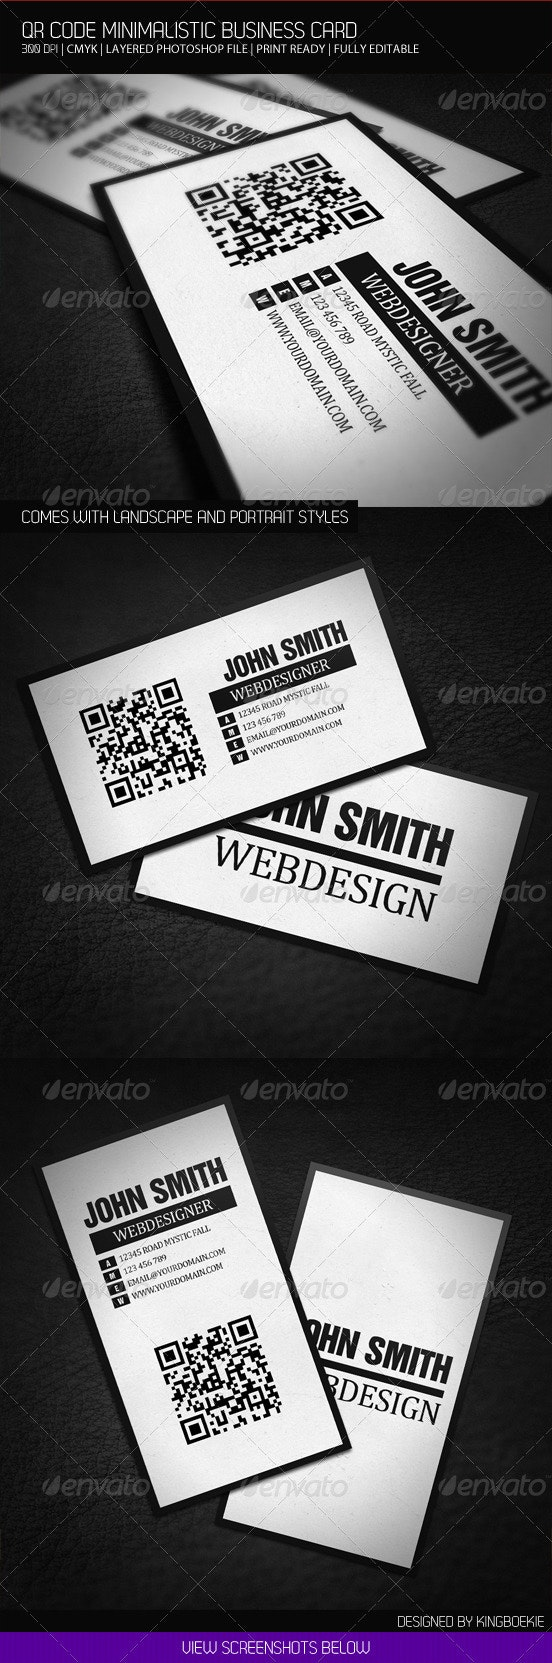 QR Code Minimalistic Business Card - Corporate Business Cards